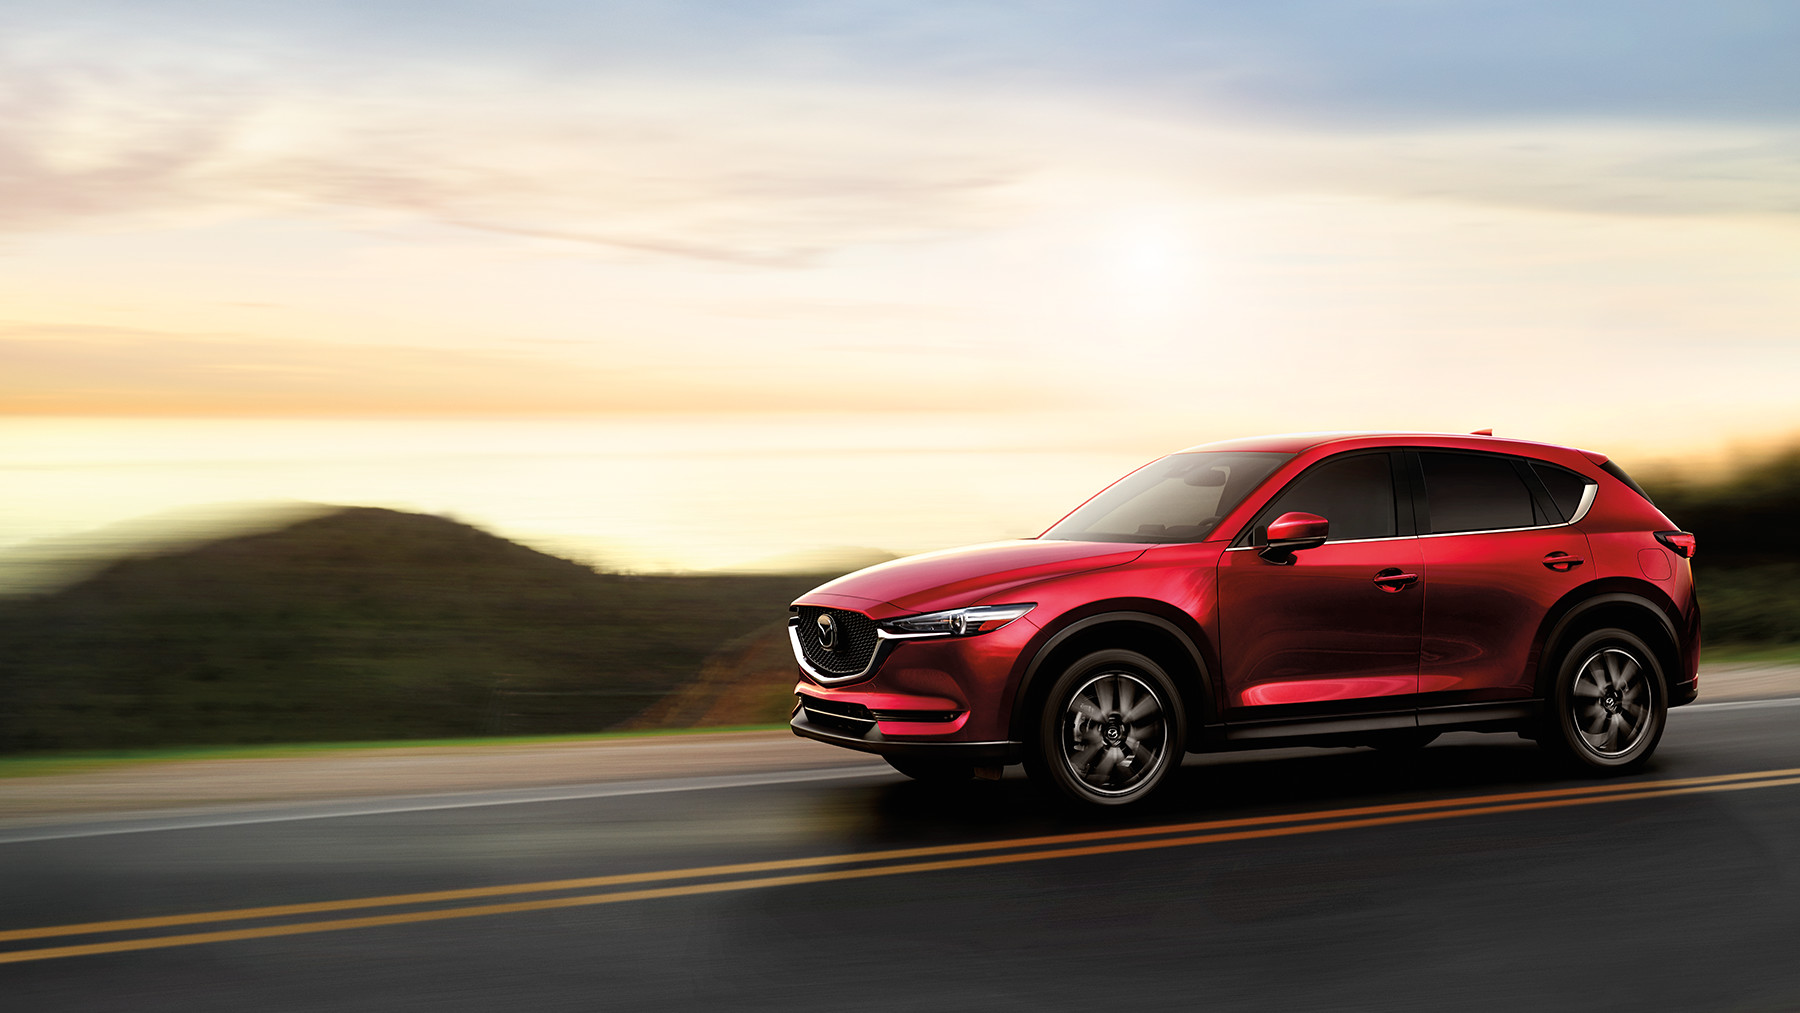 2017 Mazda CX-5 vs 2017 Ford Explorer near La Porte, TX